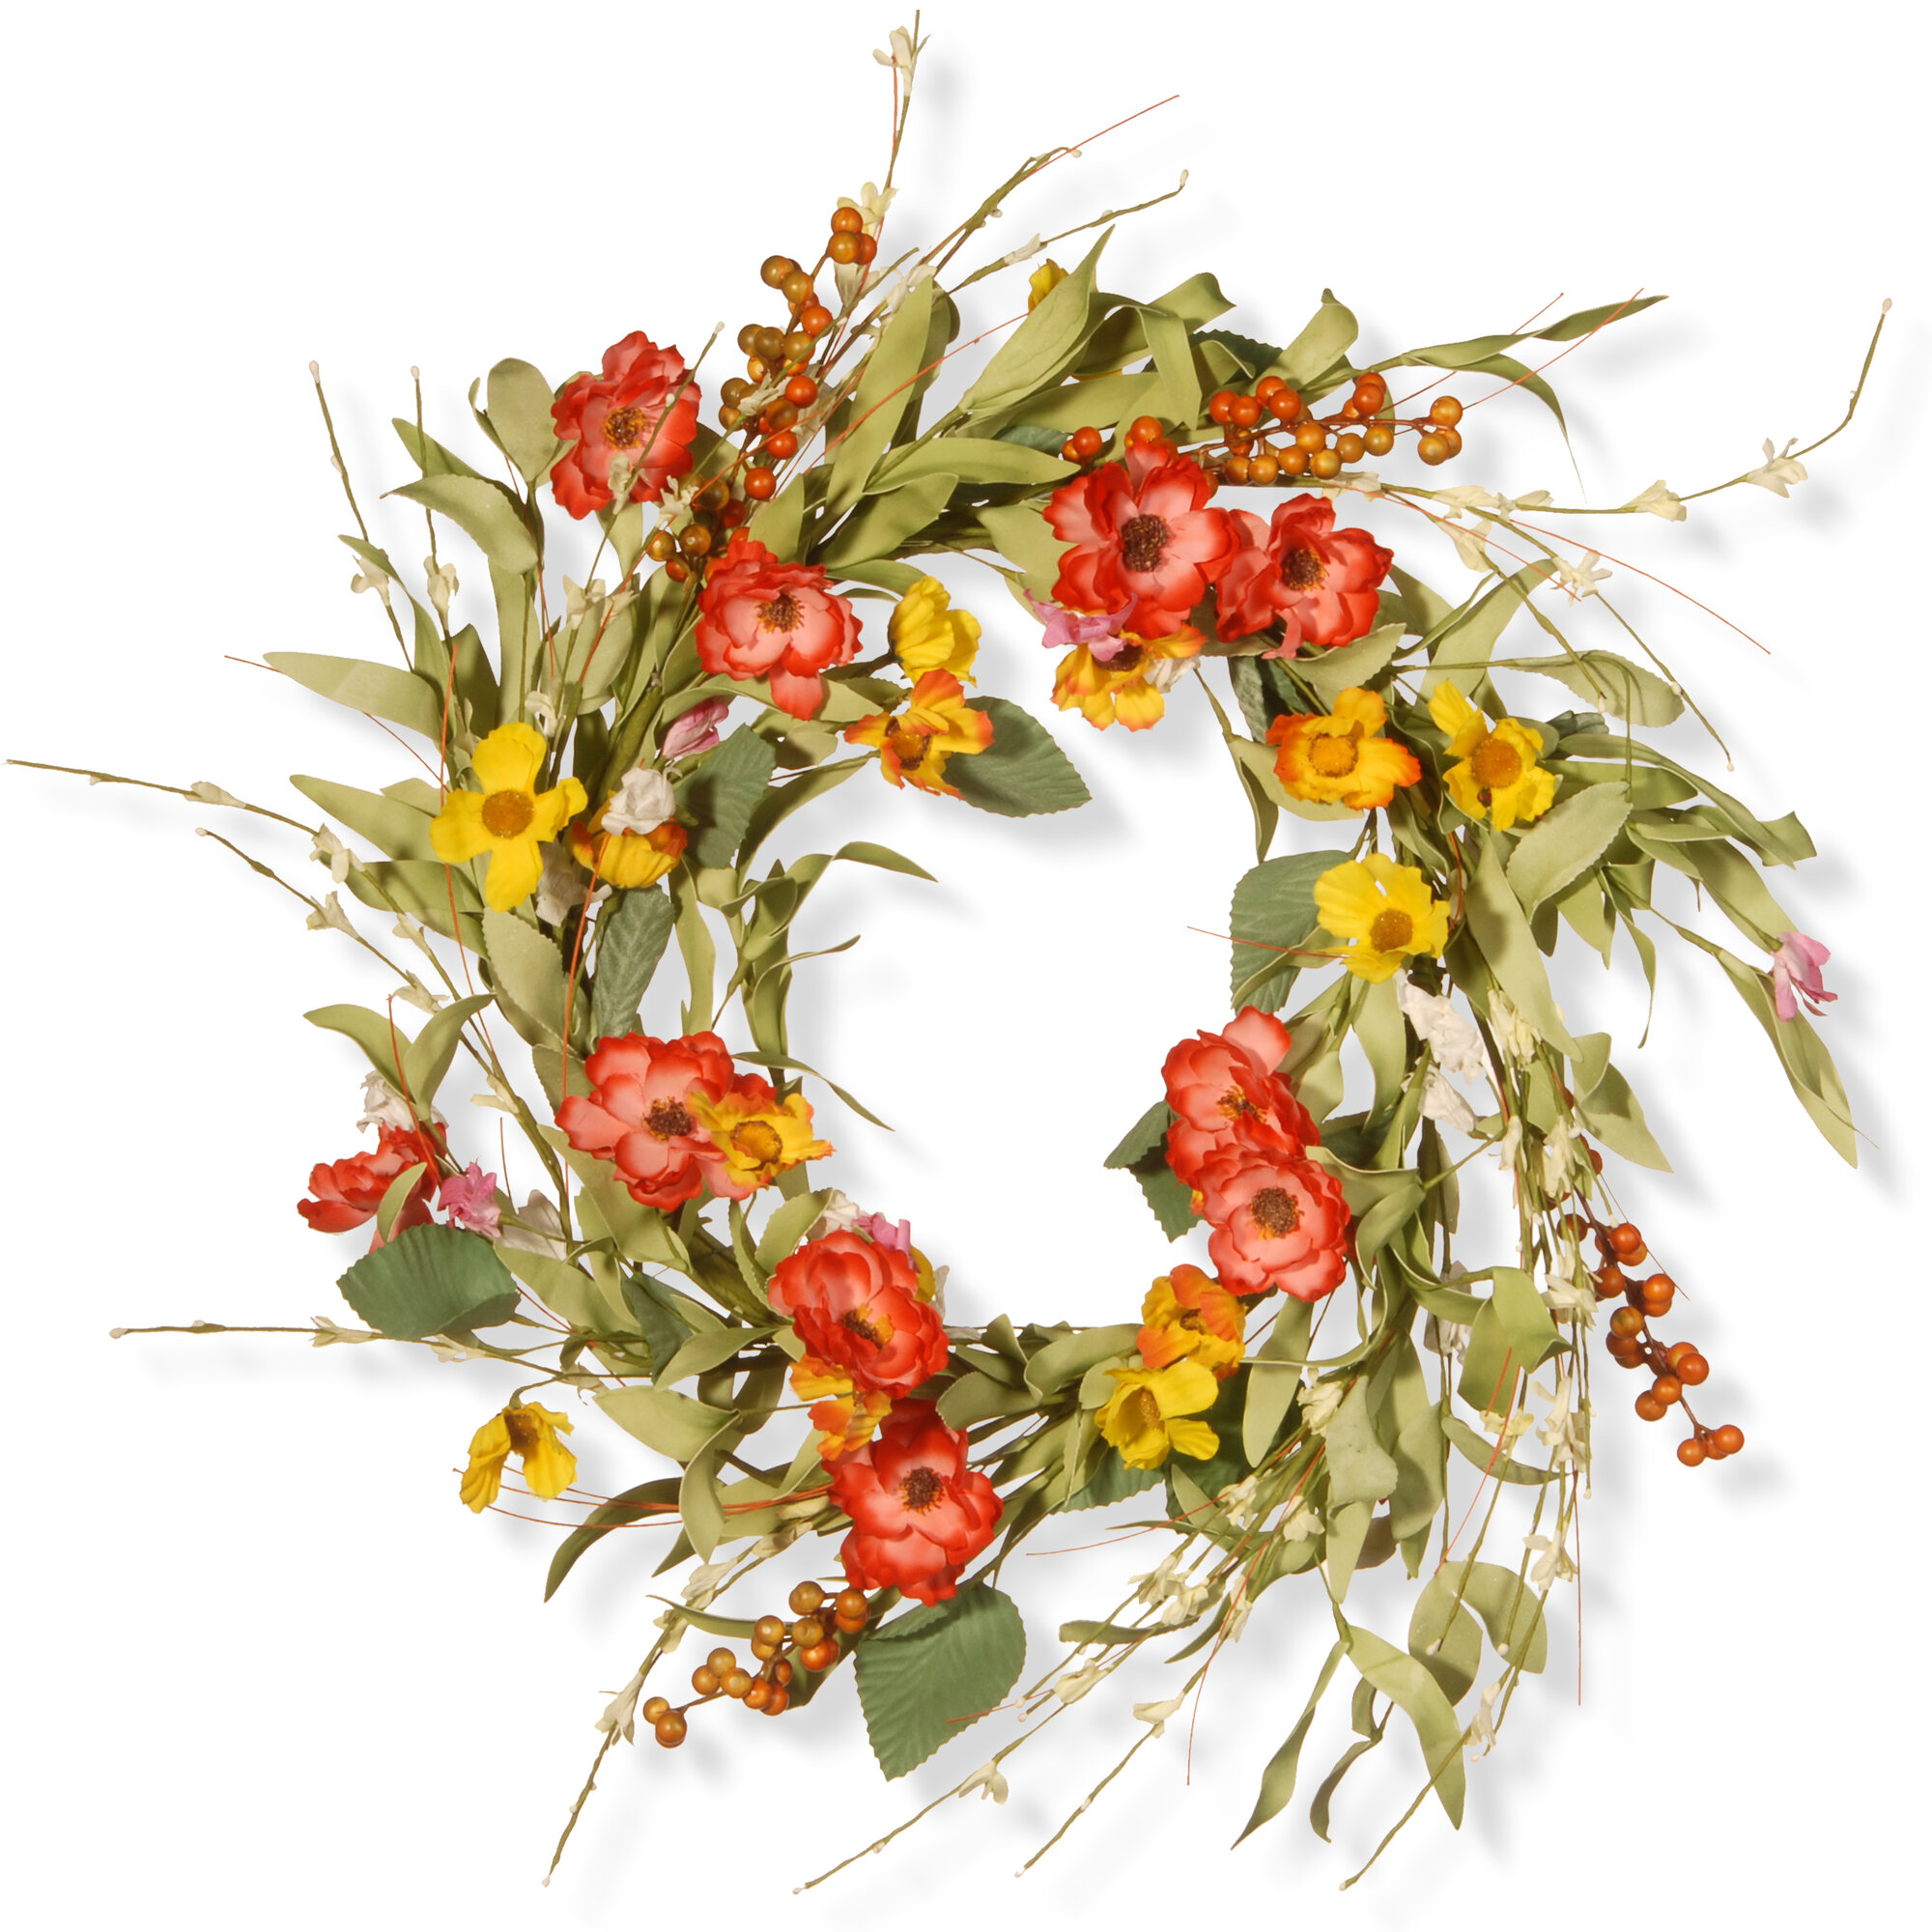 Elegant Dried Flower Wreath/ Spring Wreath/ Floral Wreath/ |Spring Flower Wreath